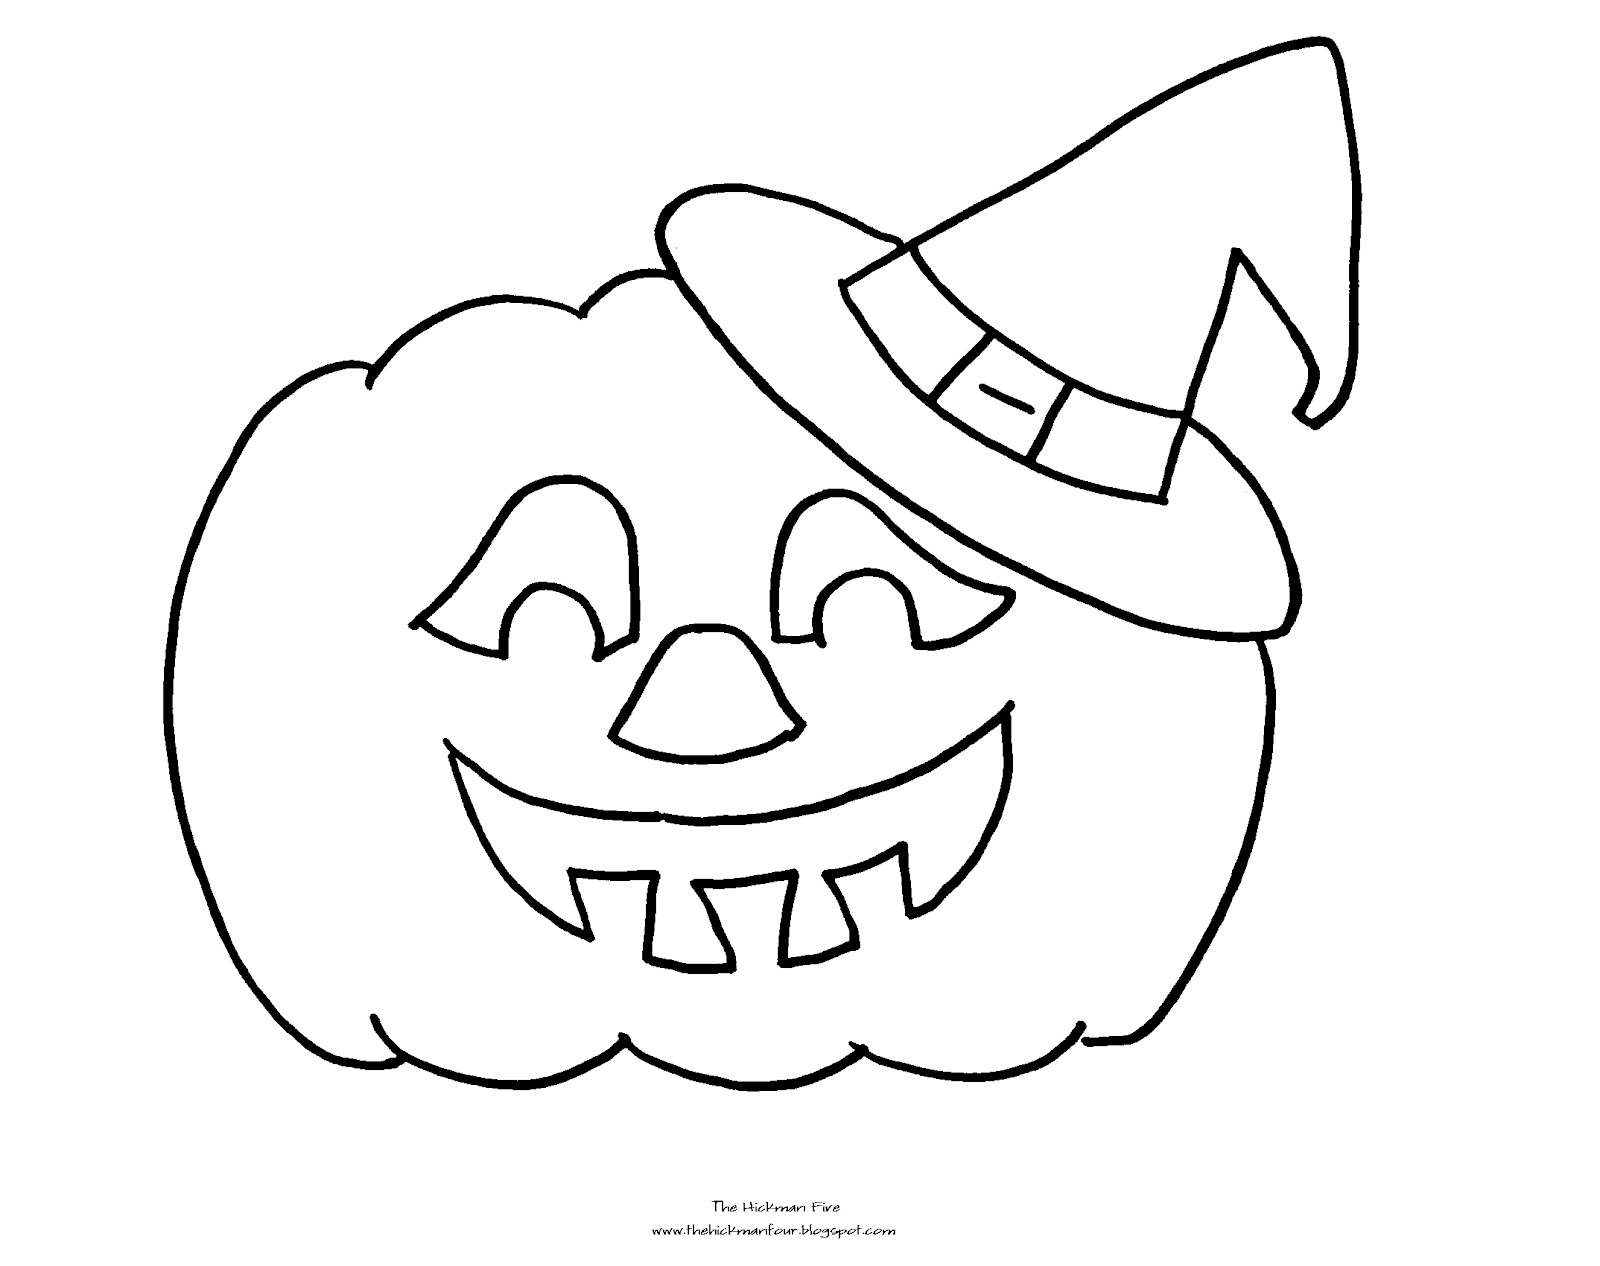 Apple Coloring Pages For Preschoolers